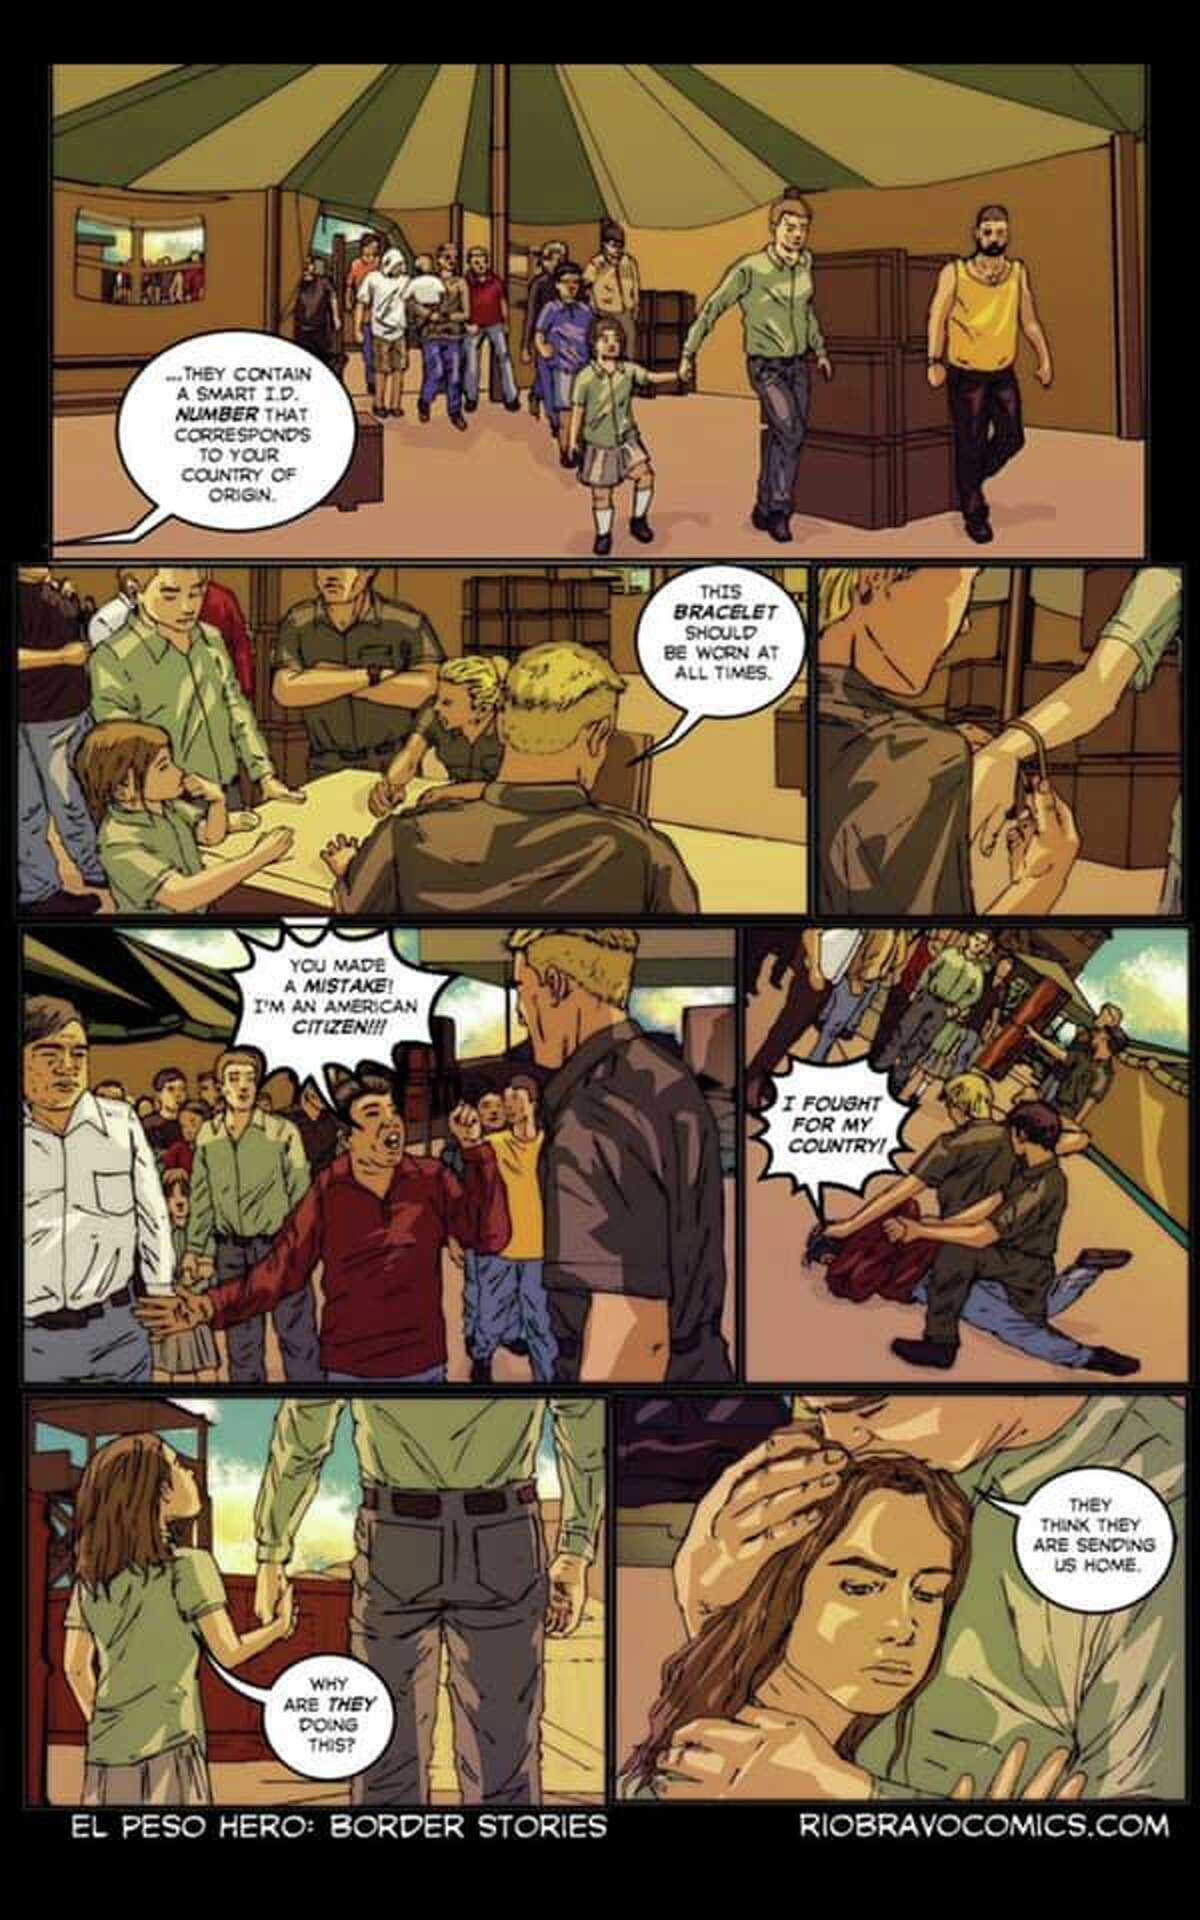 A scene from the comic book series.